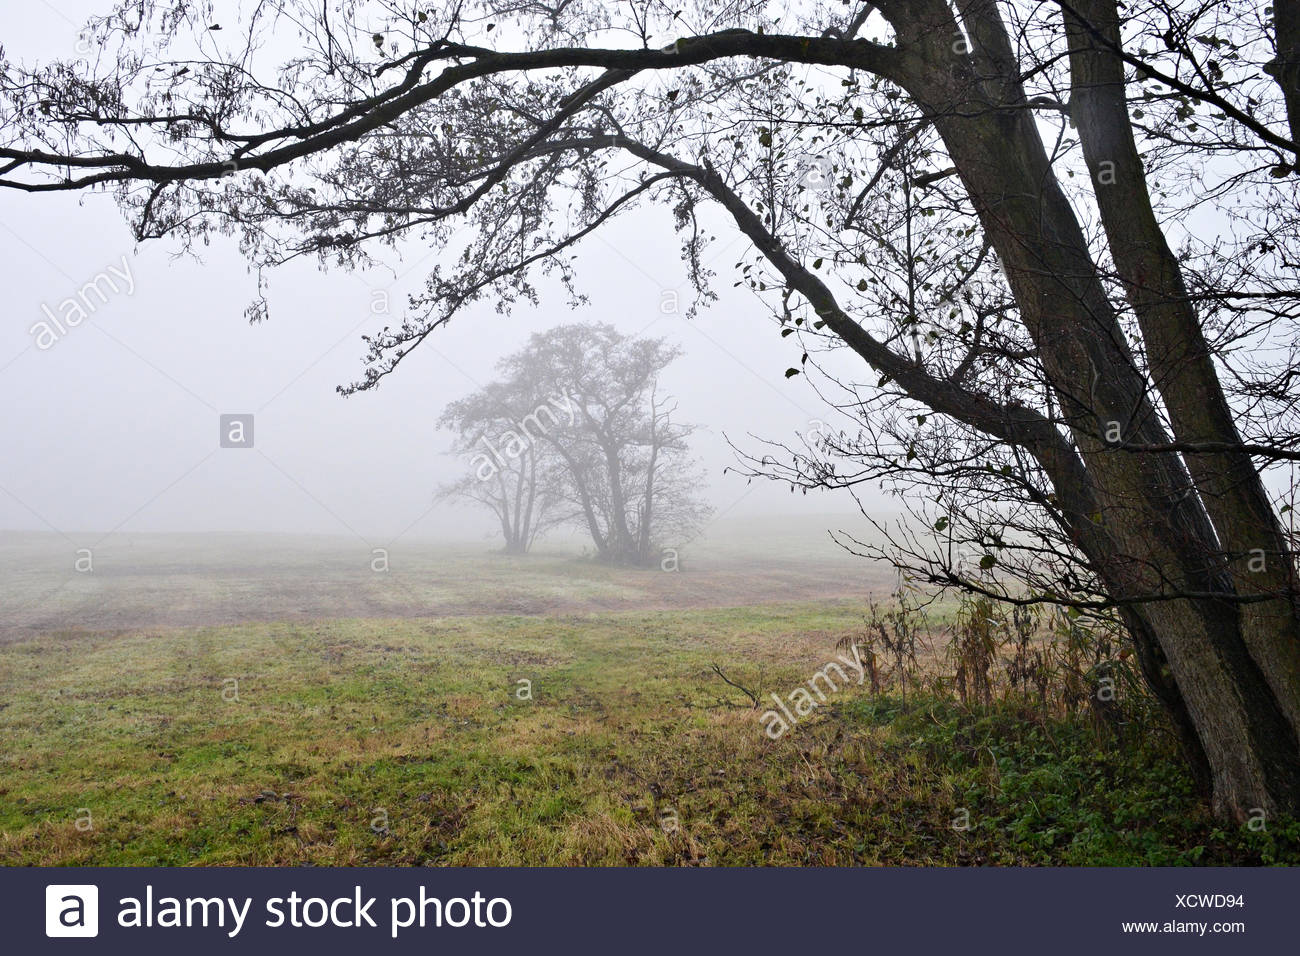 Awl trees in the fog. - Stock Image